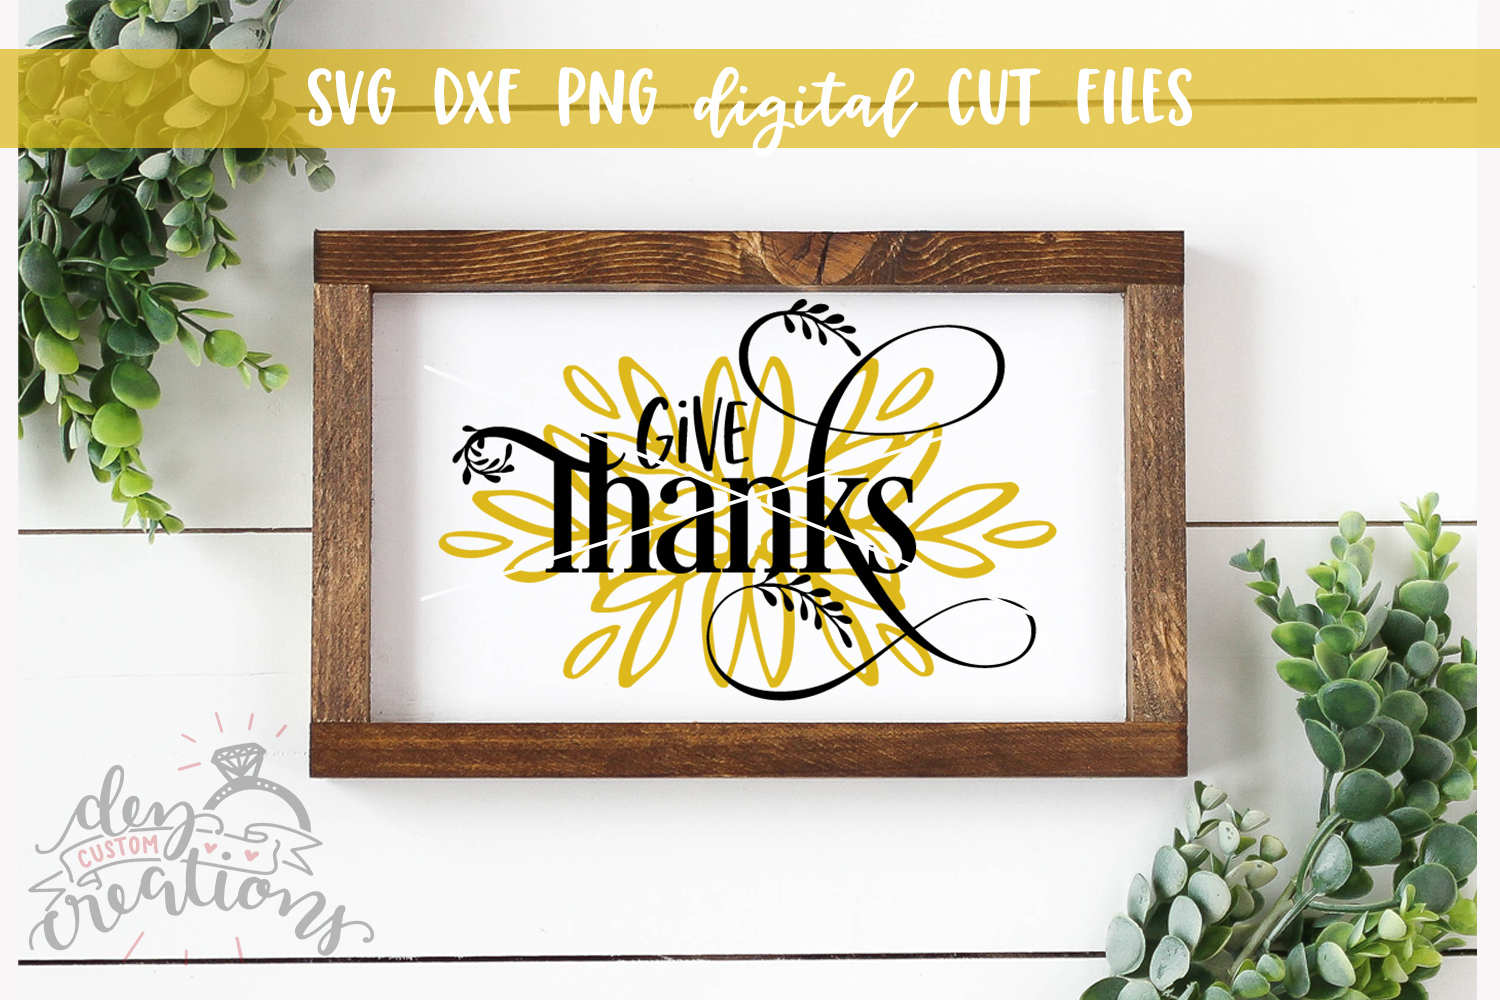 Give Thanks - SVG DXF PNG Digital Cut File example image 2